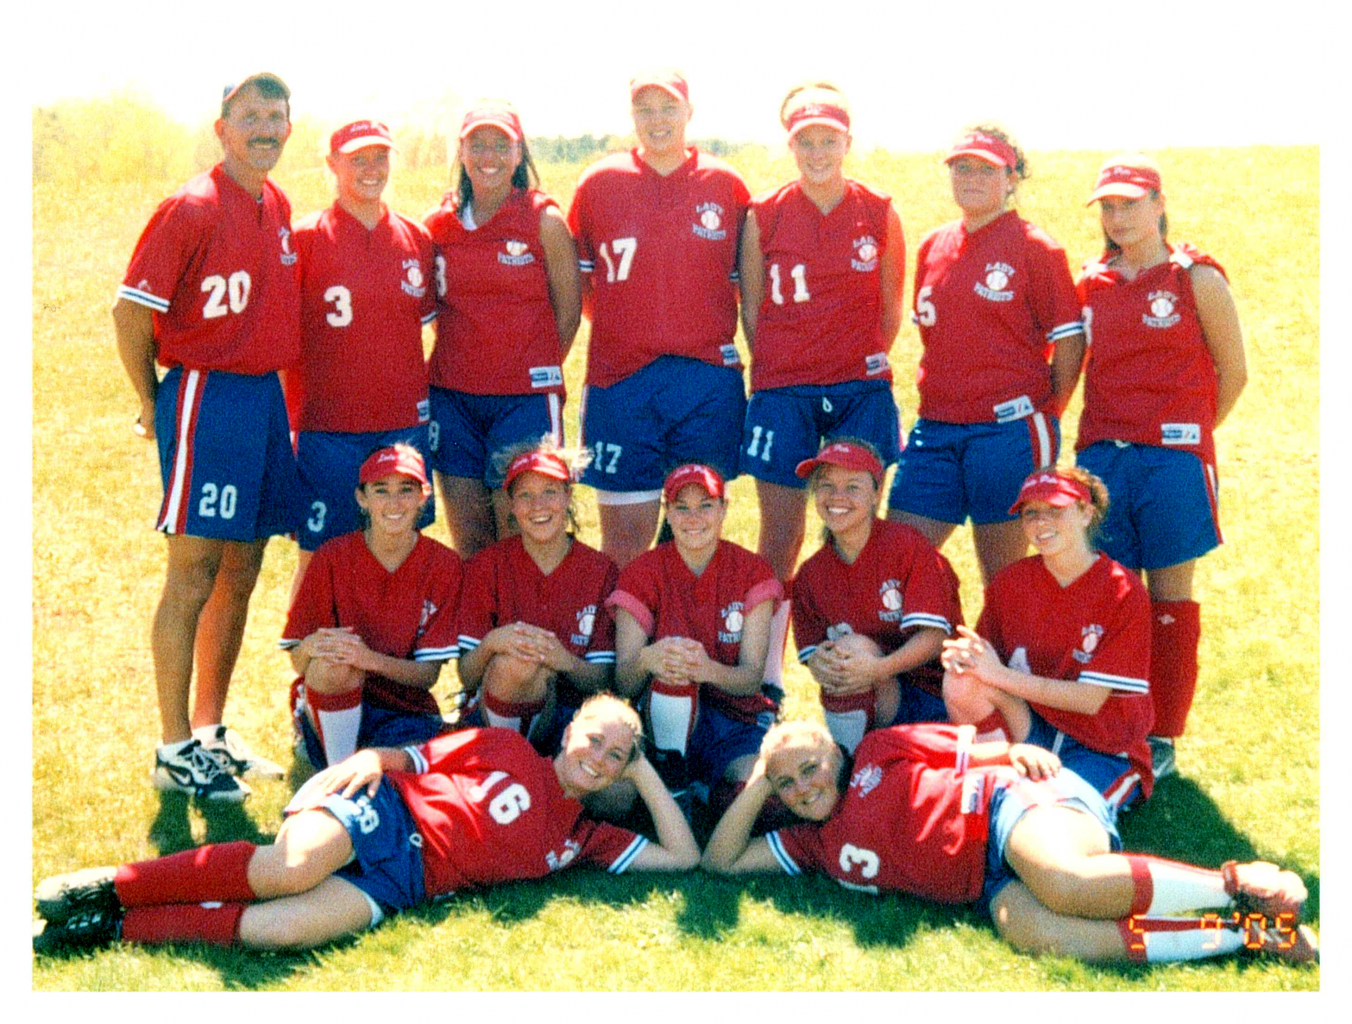 Team photo of 2005 B-P Varsity Softball in three rows. Players are wearing caps, red shirts and blue shorts